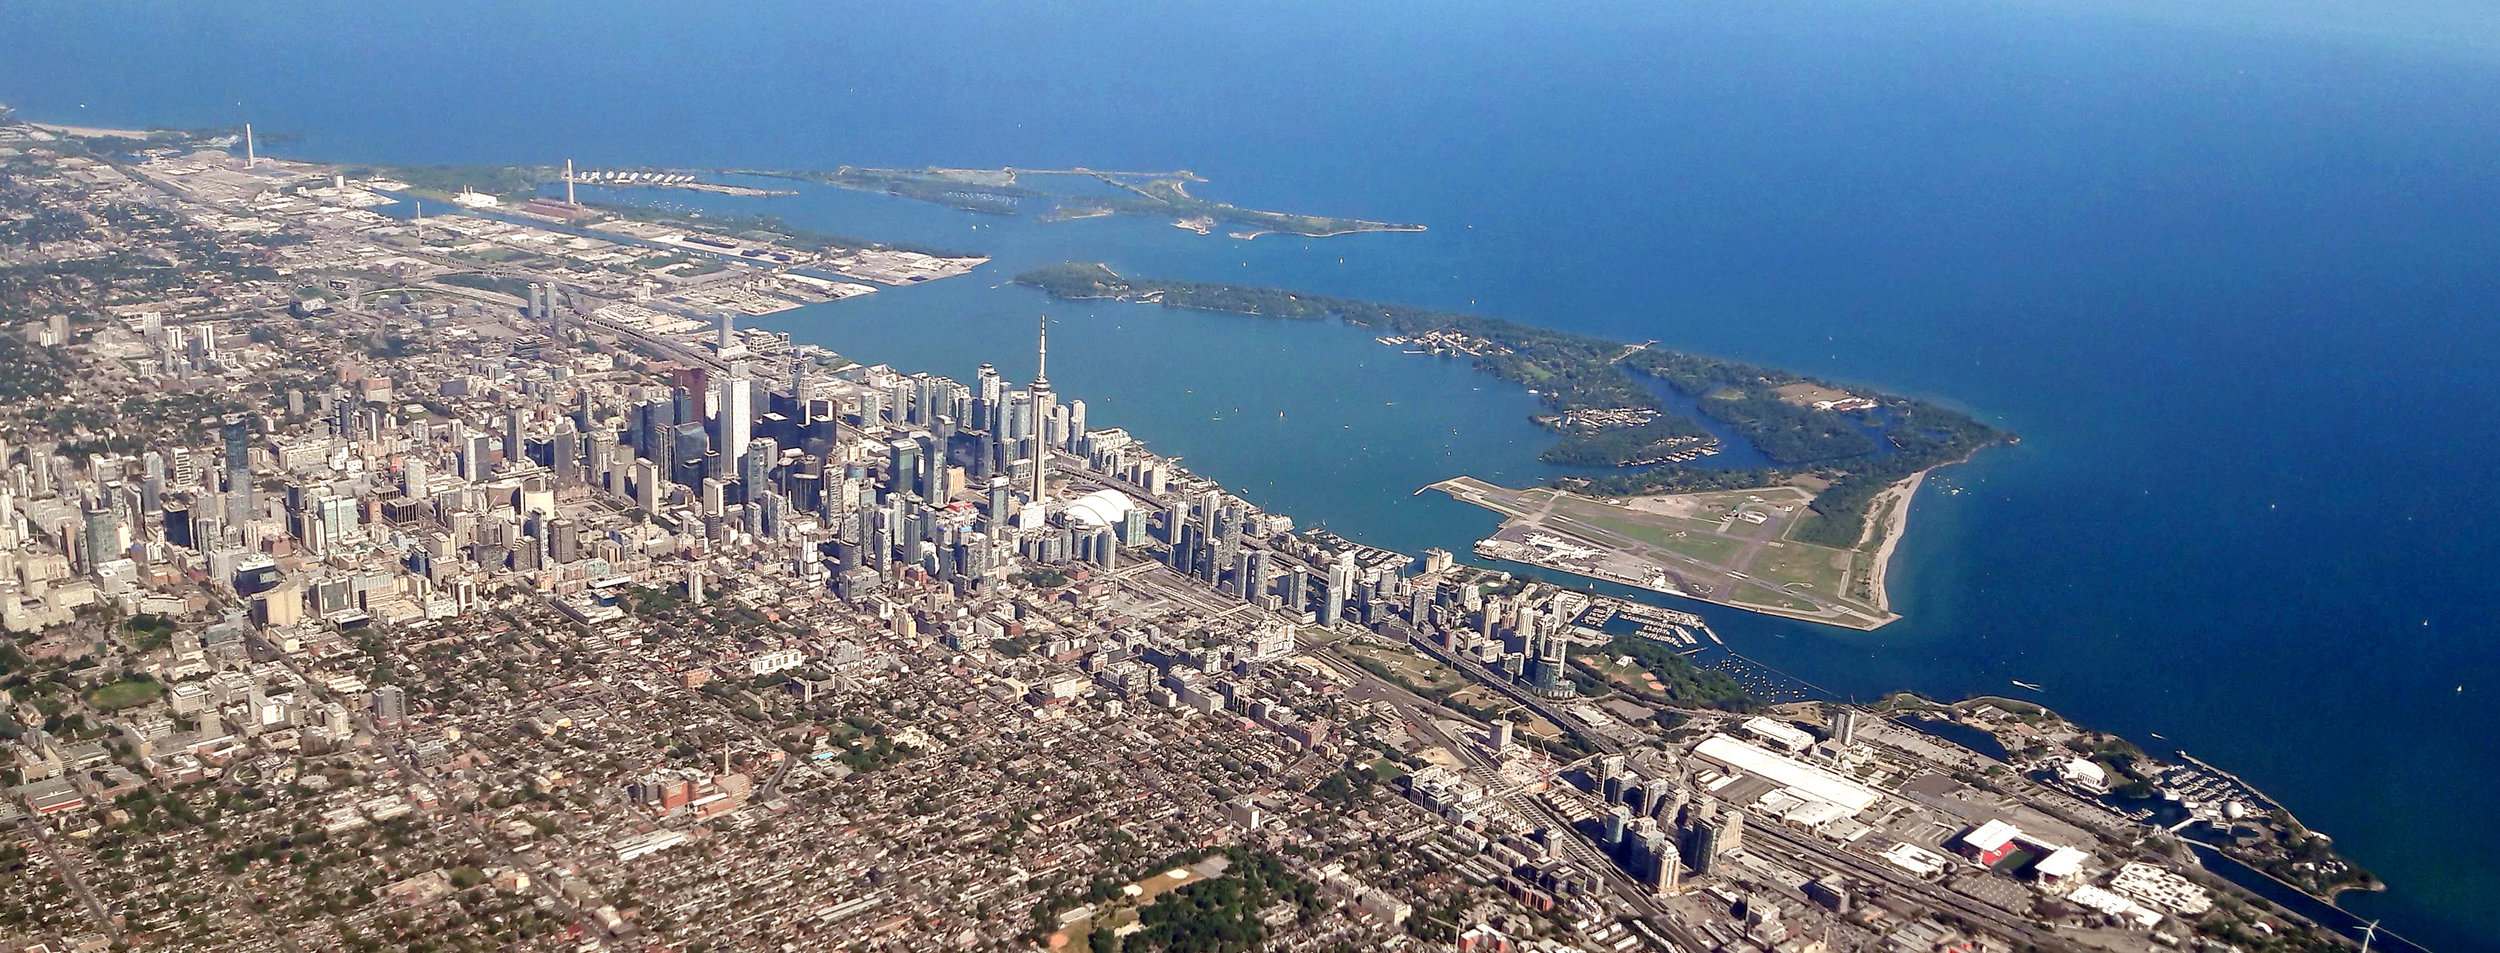 Flying into Toronto Airport. The CN Tower towers above the city.